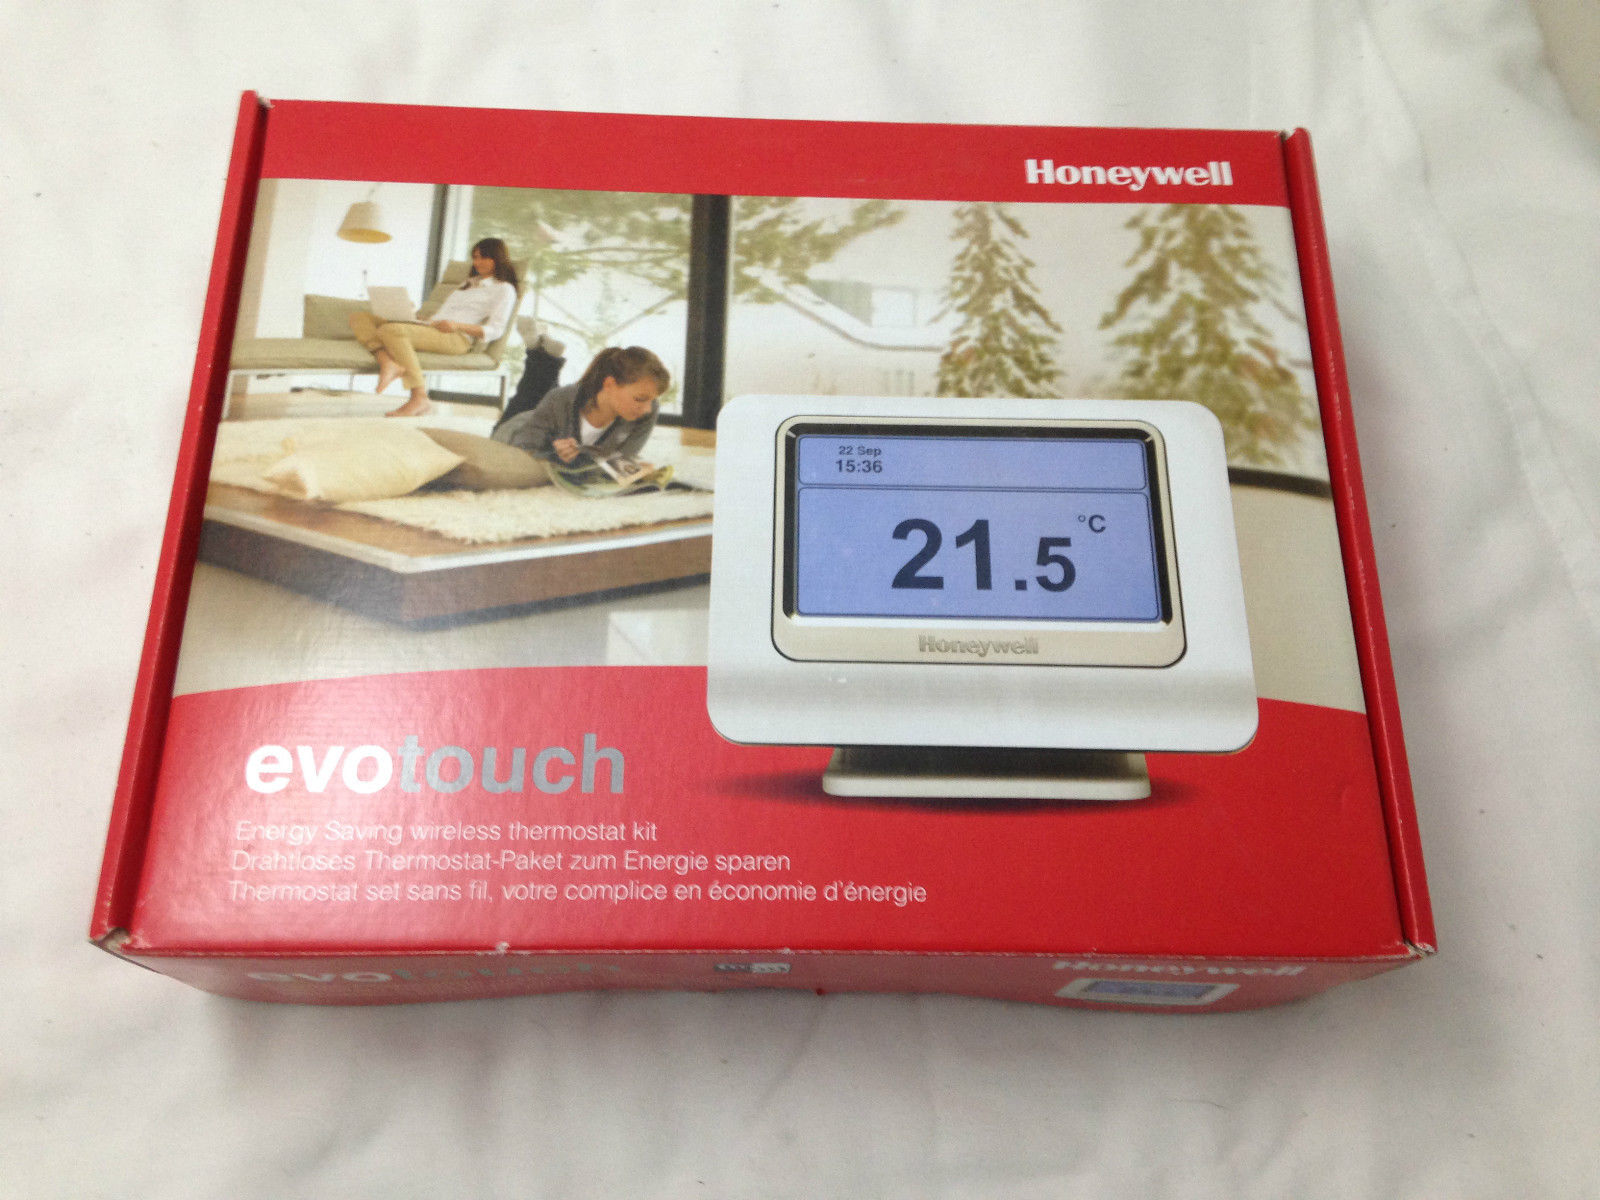 honeywell wifi thermostat kit blank diagram of synapse evotouch wireless programmable